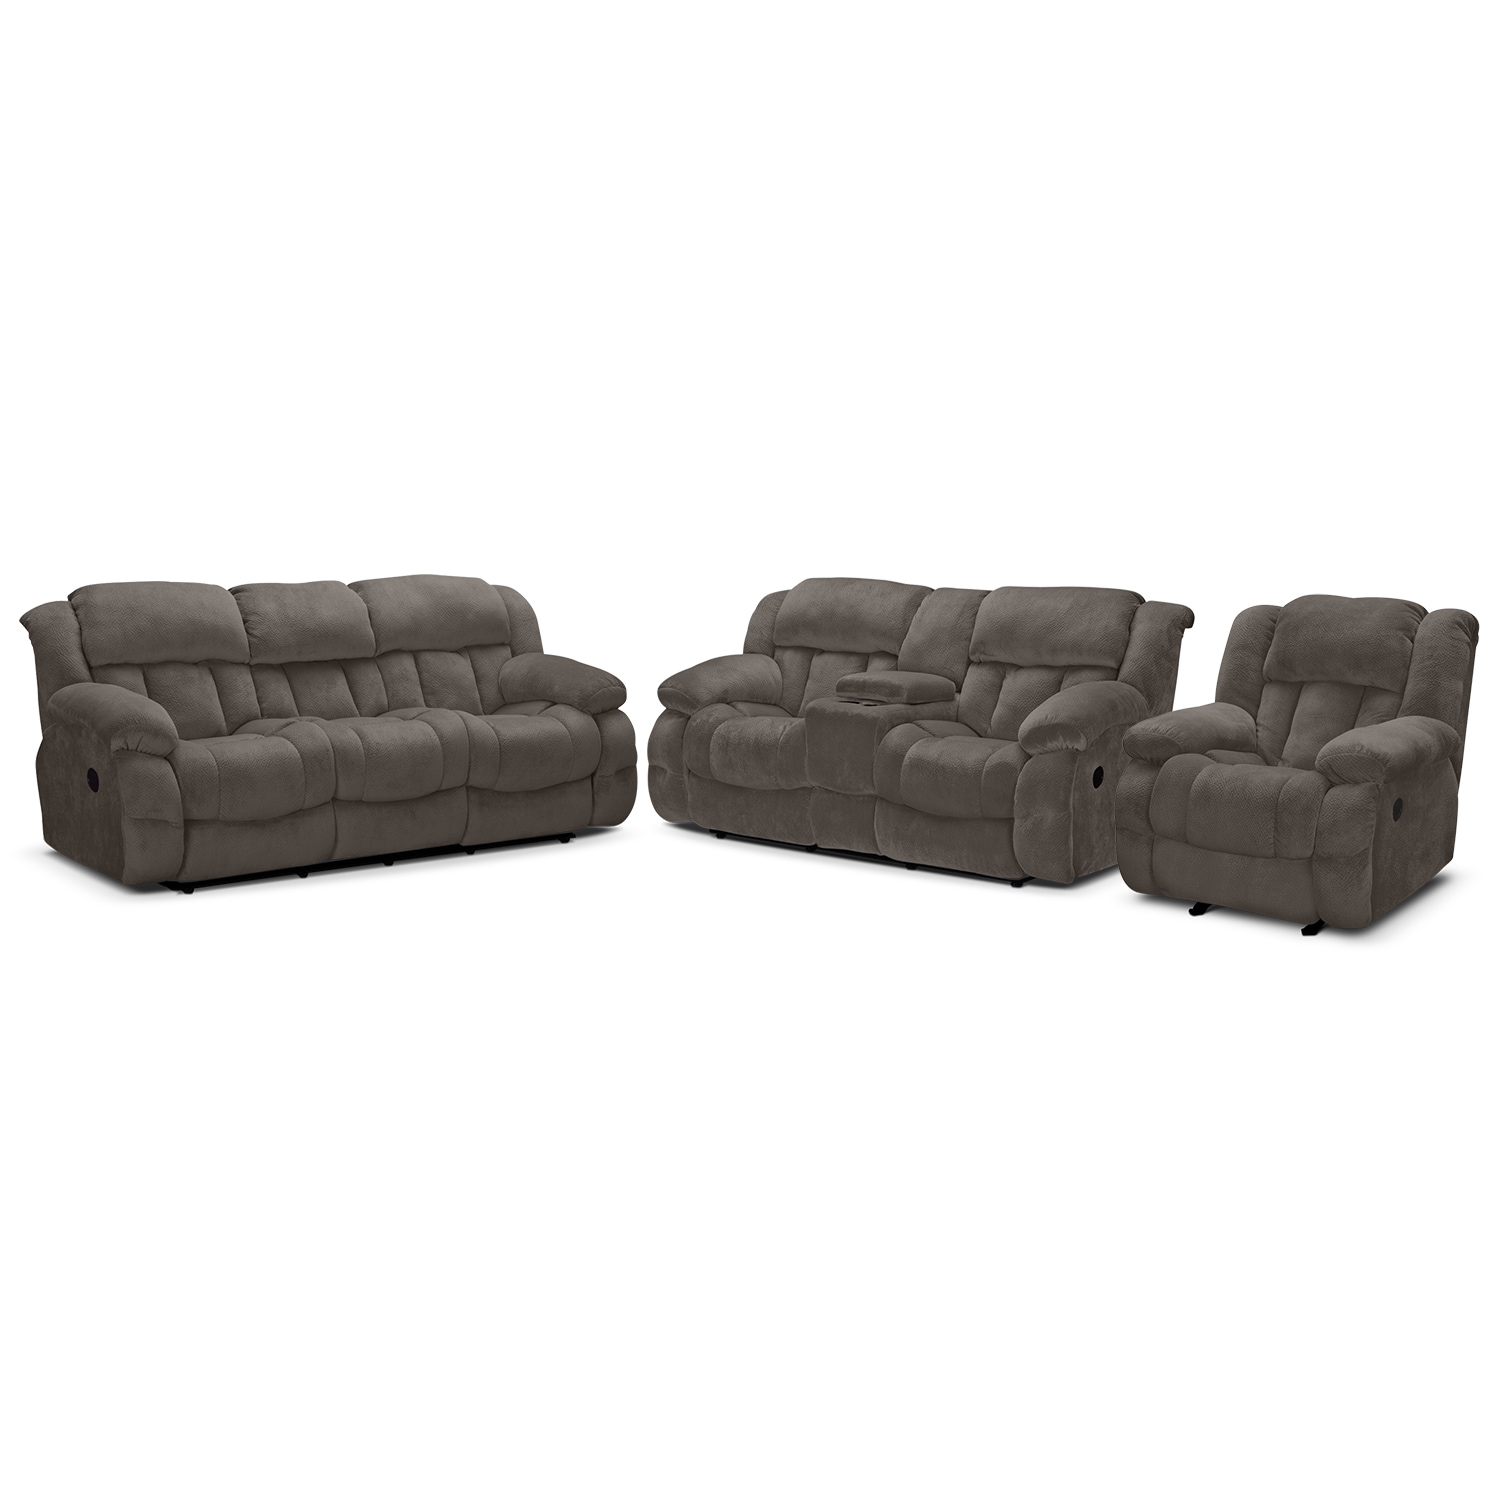 Living Room Furniture - Park City Dual Reclining Sofa, Loveseat and Glider Recliner Set - Gray